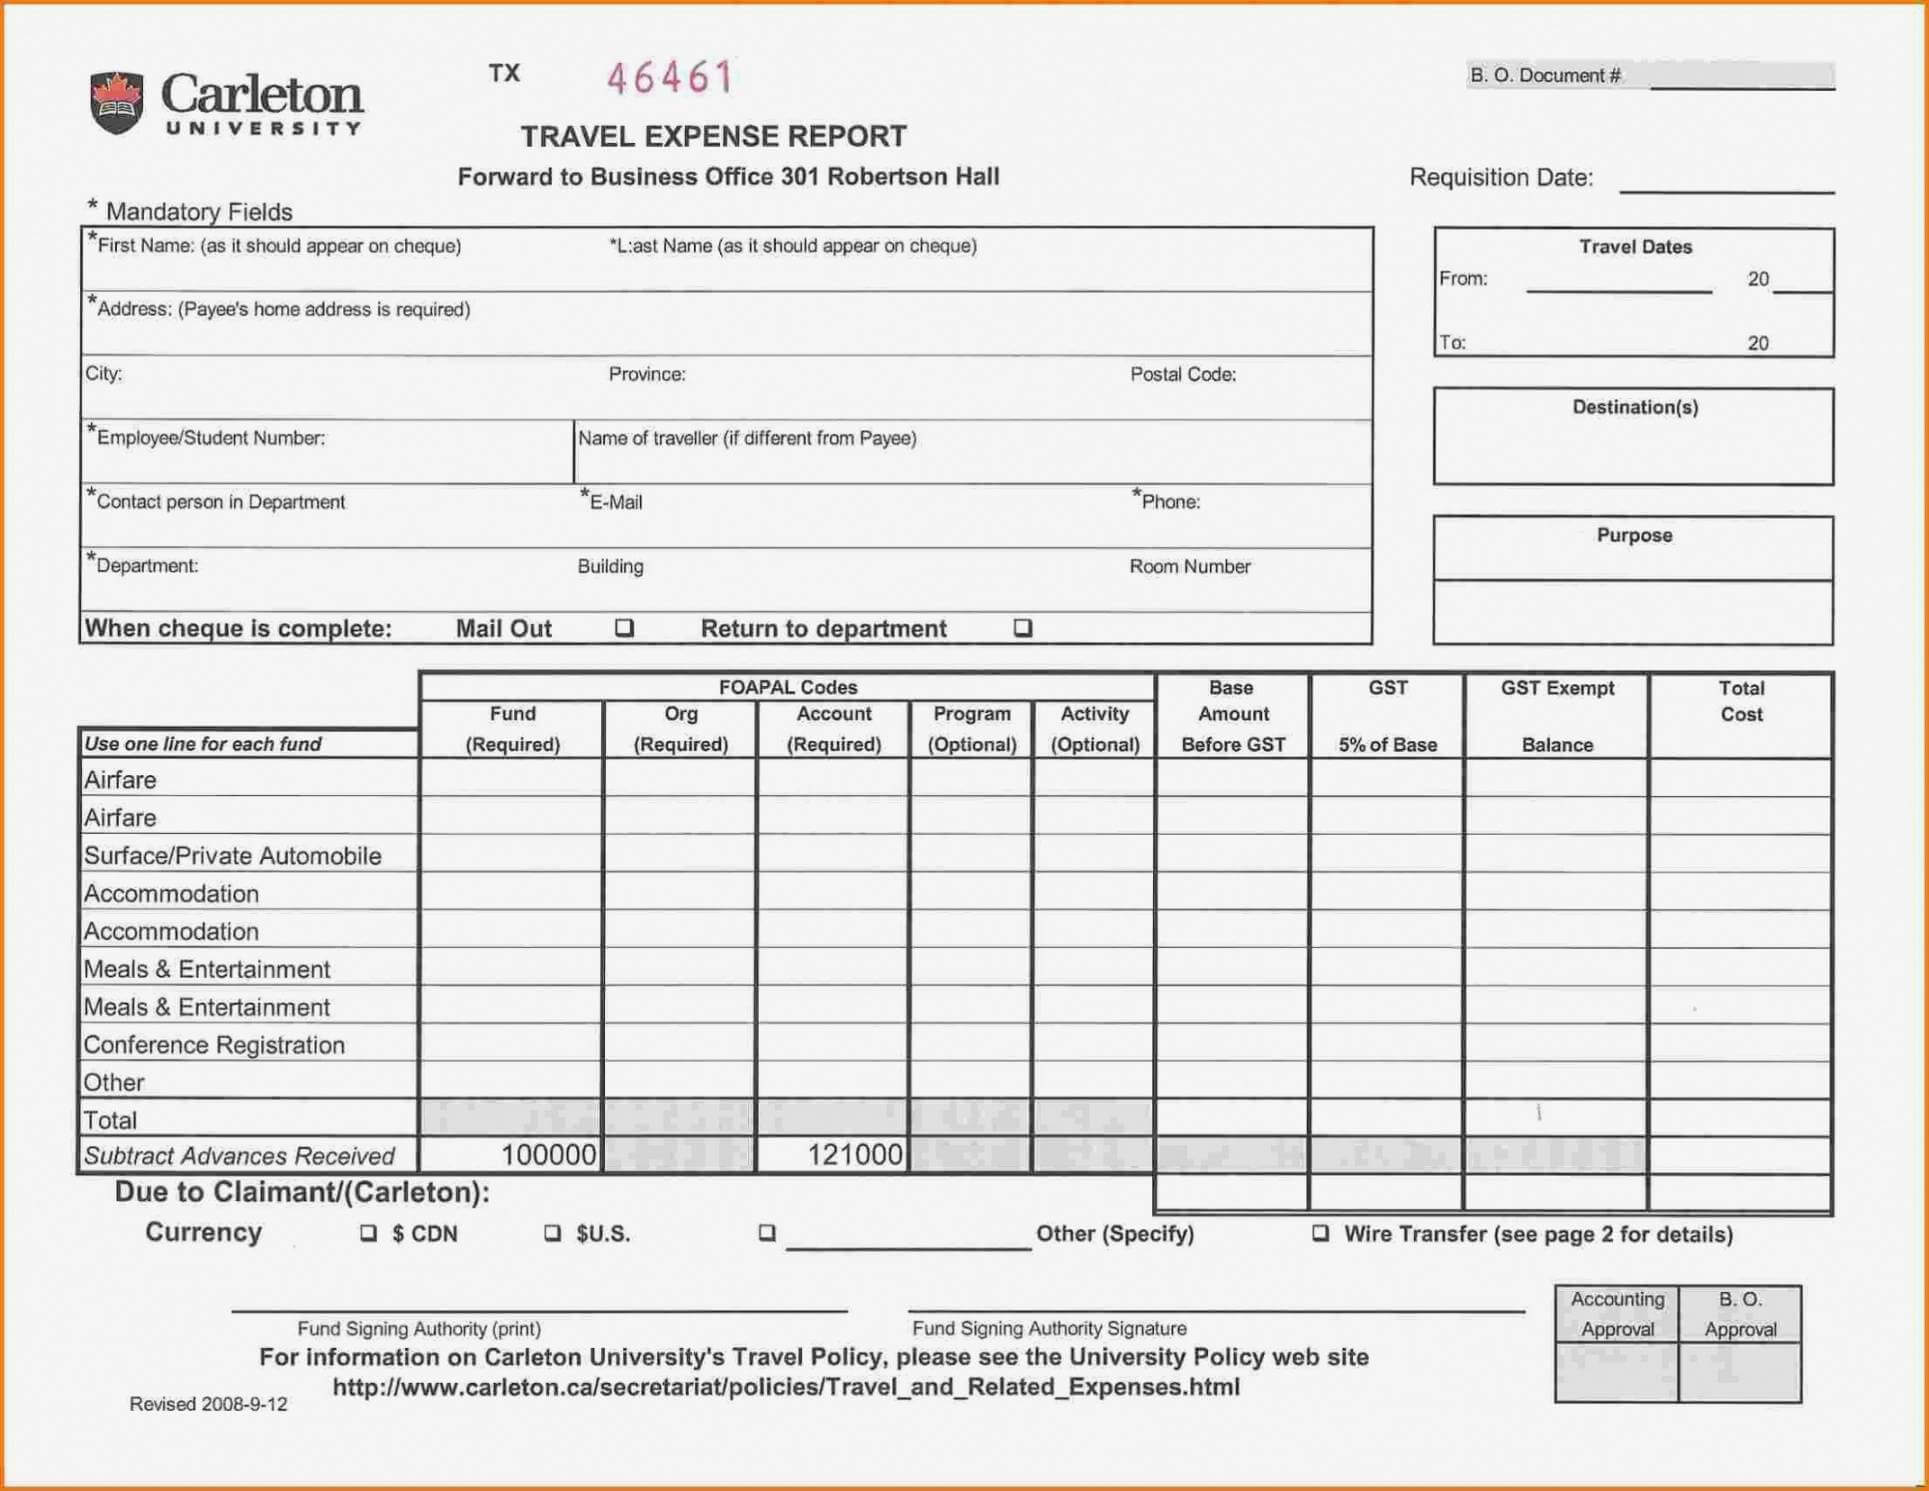 Printable Air Balance Report Form Mersnproforum Form With Air Balance Report Template